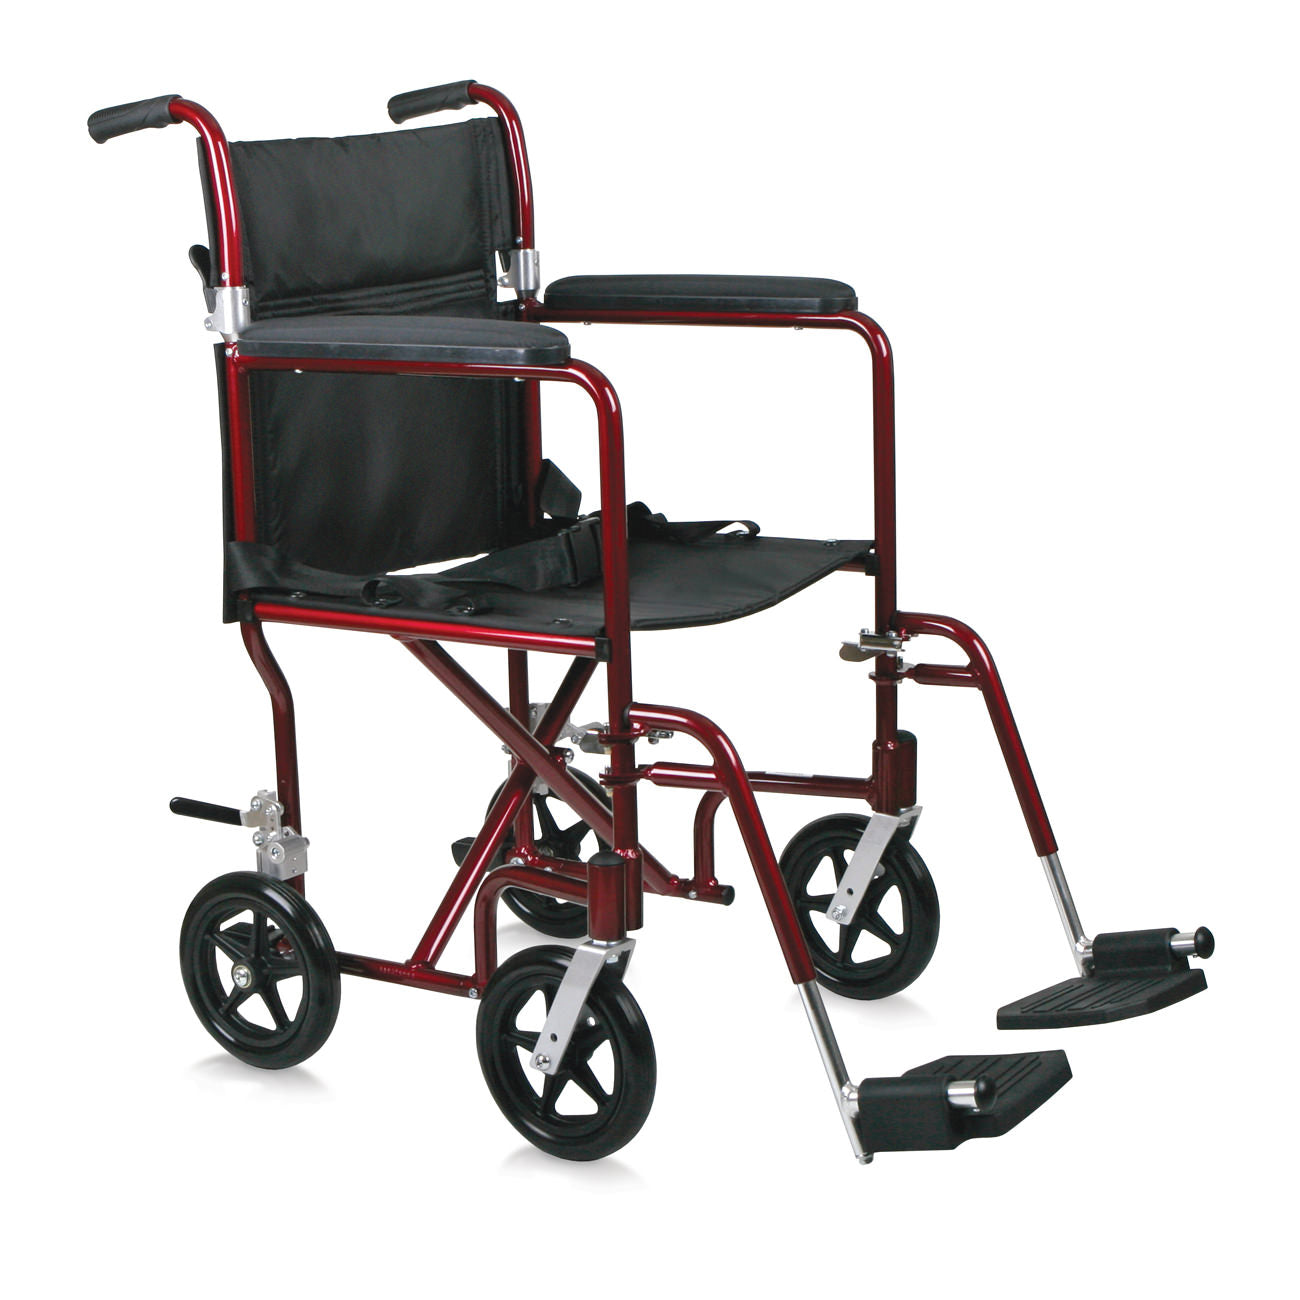 "Medline 19"" Aluminum Transport Wheelchair"